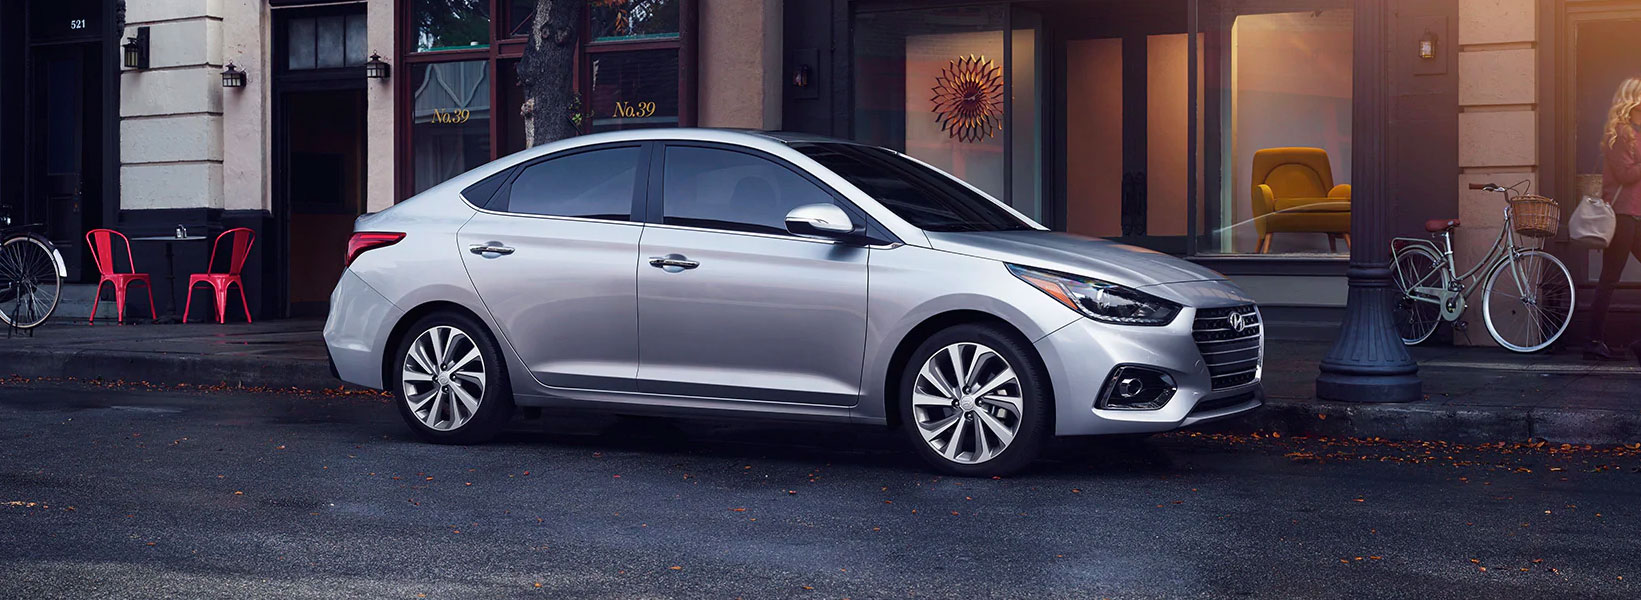 2019 Hyundai Accent Reviews Chicago IL